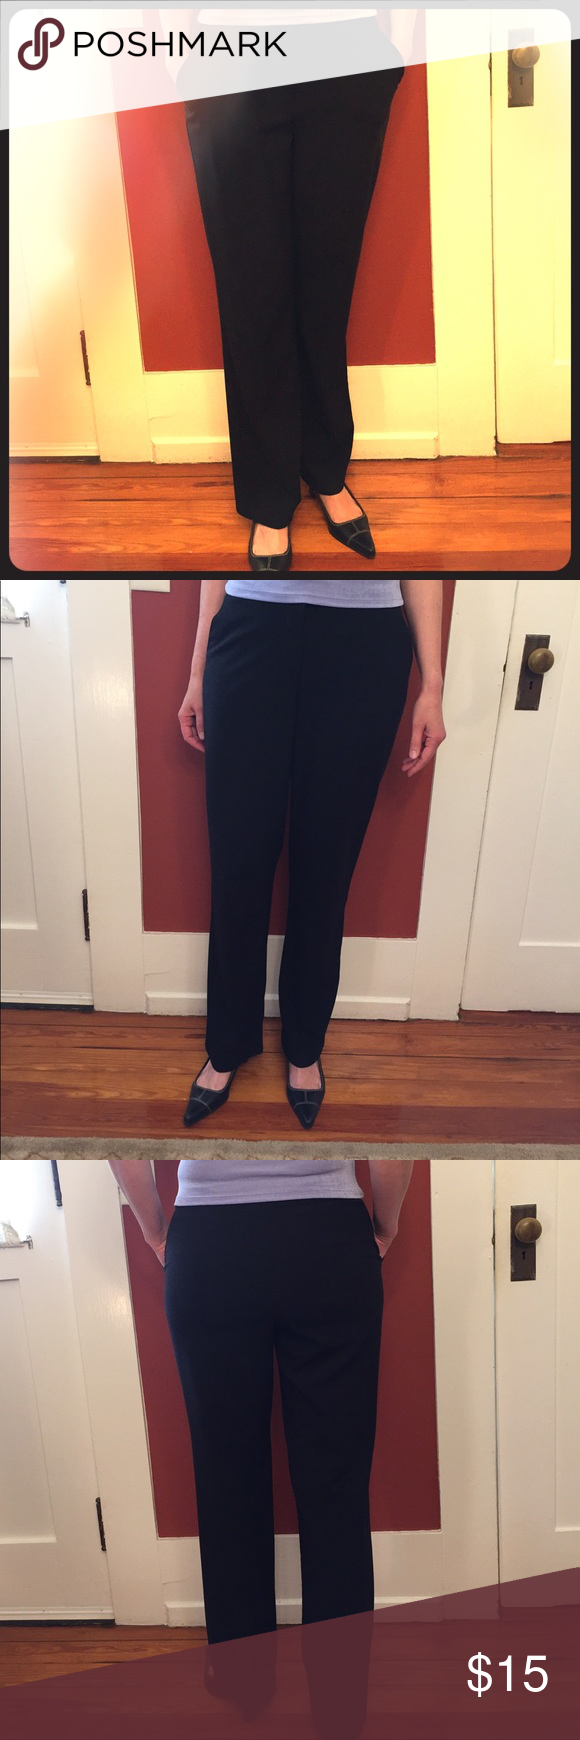 Black Dress Pants Perfect For The Office Black Dress Pants Pants Dress Pants [ 1740 x 580 Pixel ]